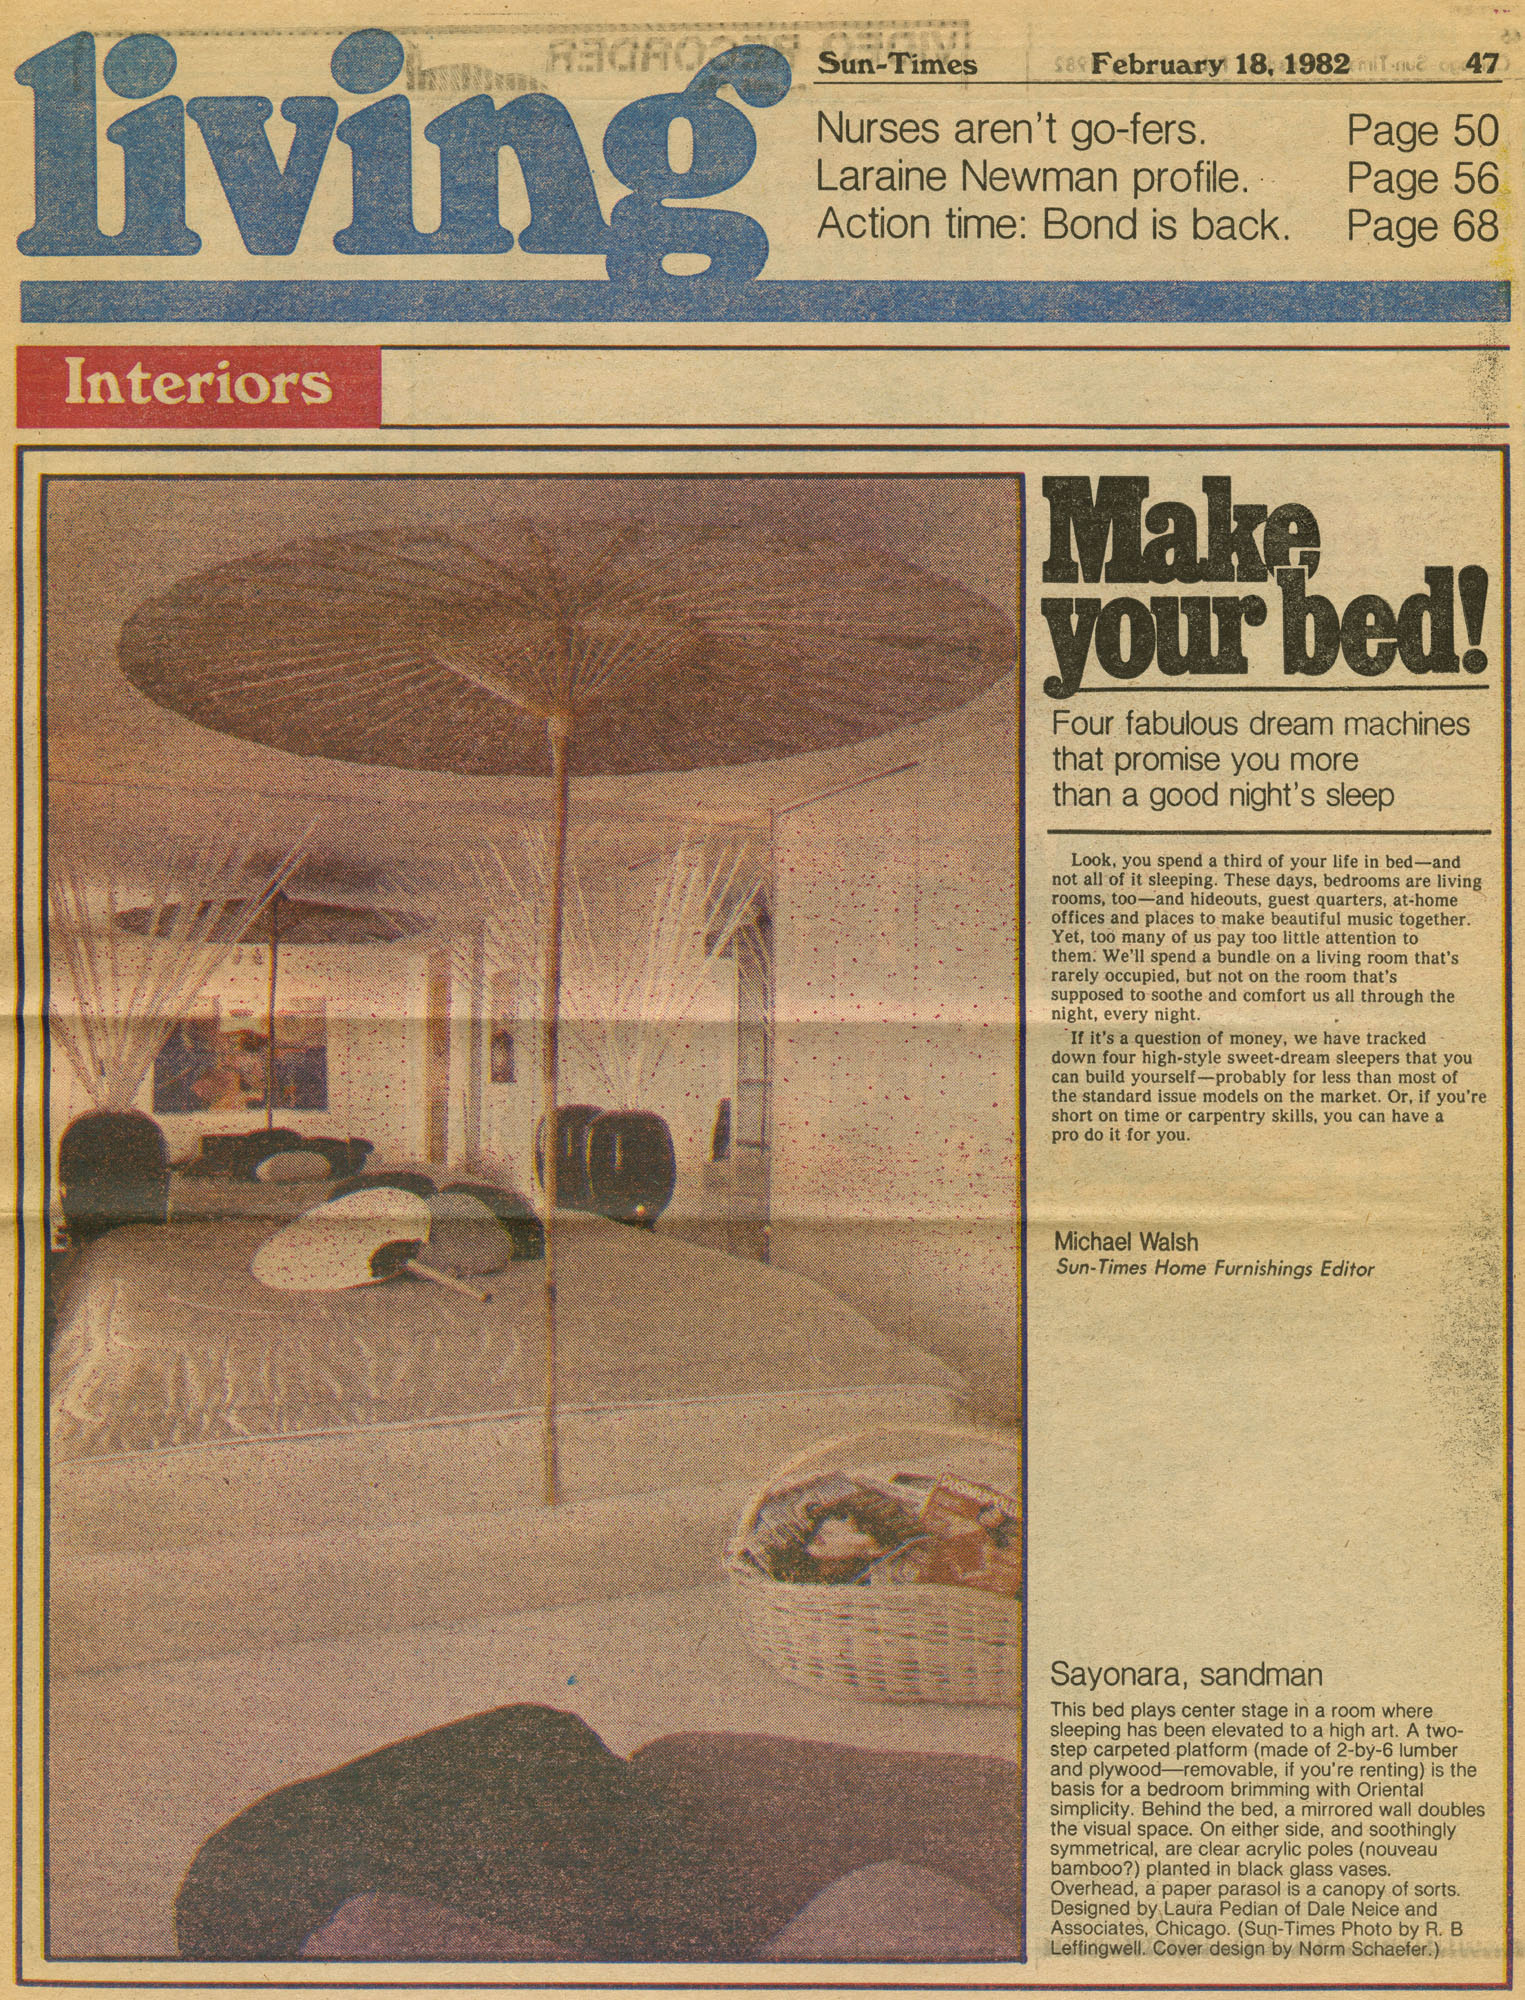 feb18,1982 Sun-times- Make Your Bed!